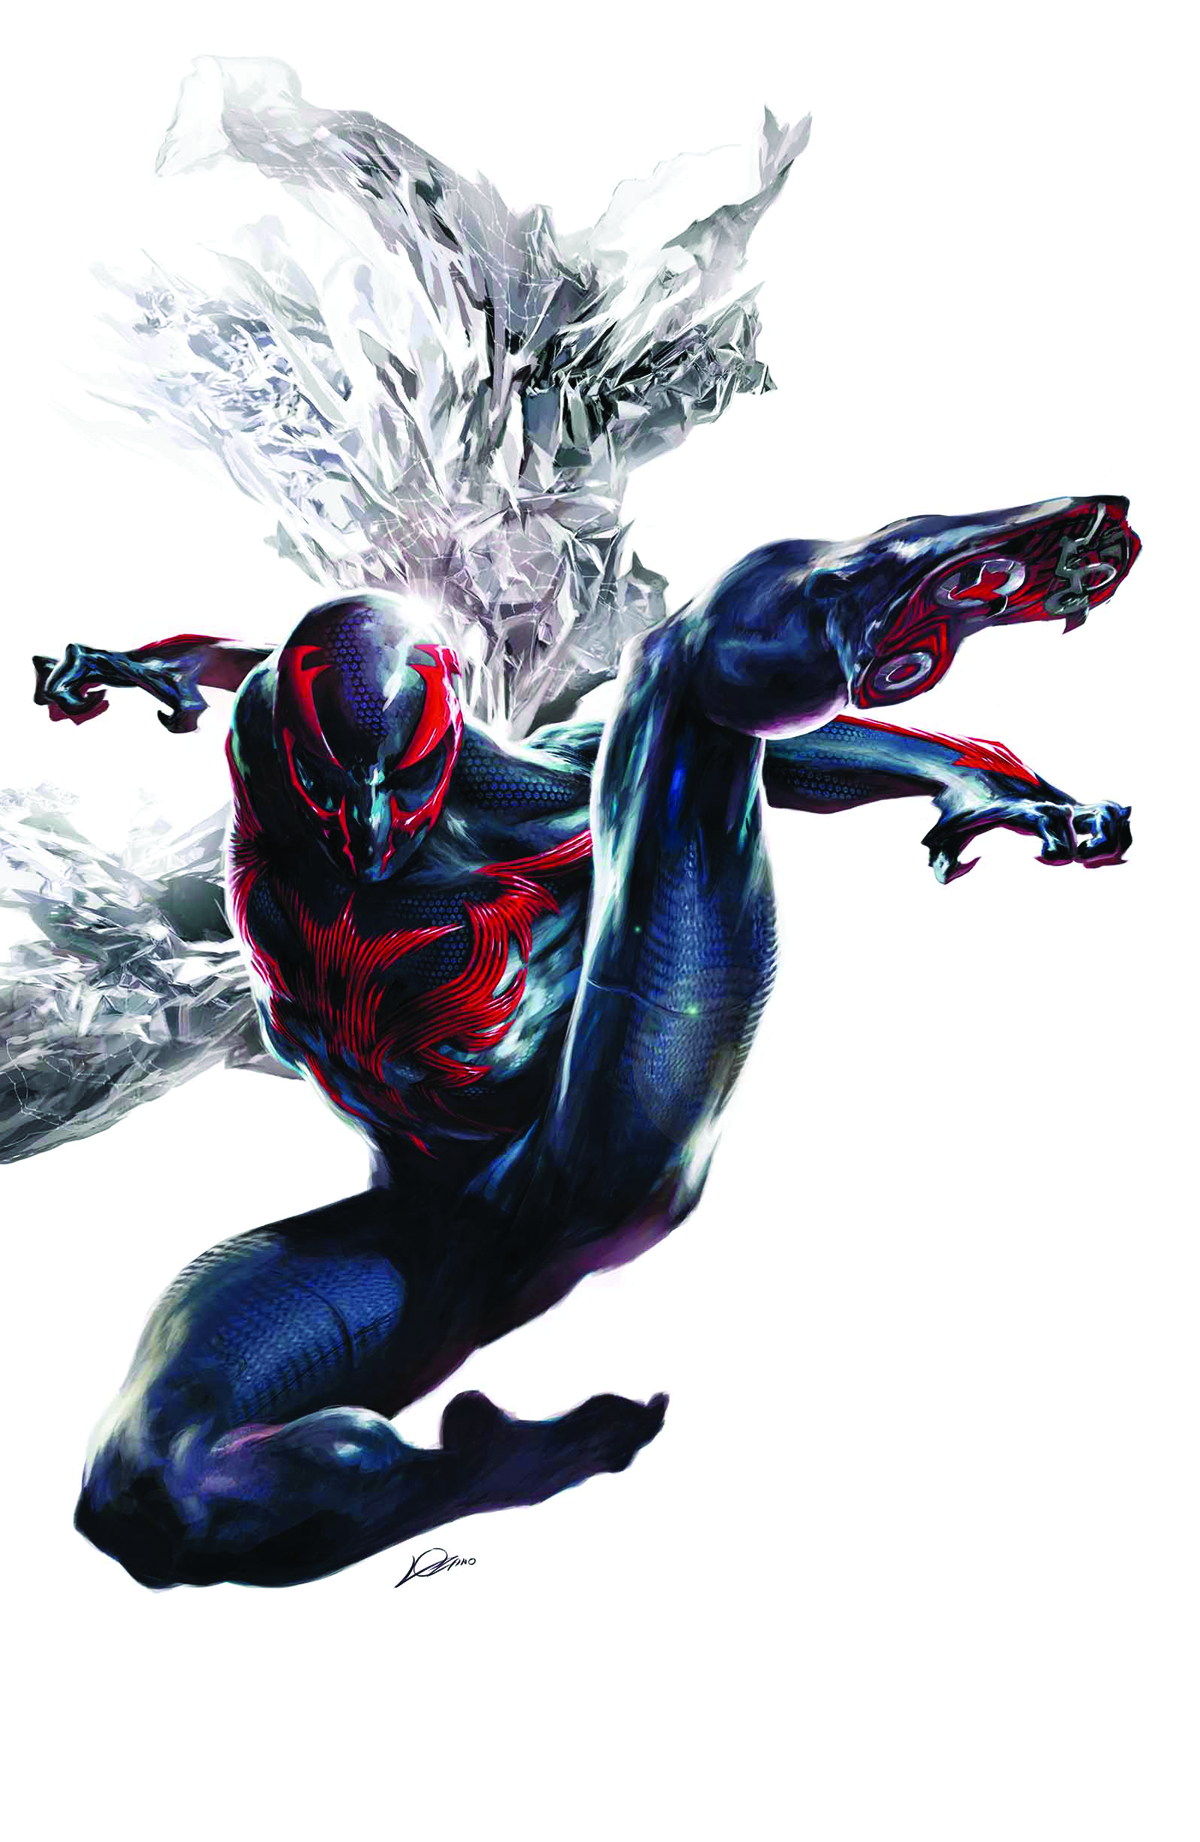 SPIDER-MAN 2099 #2 FERRY VAR